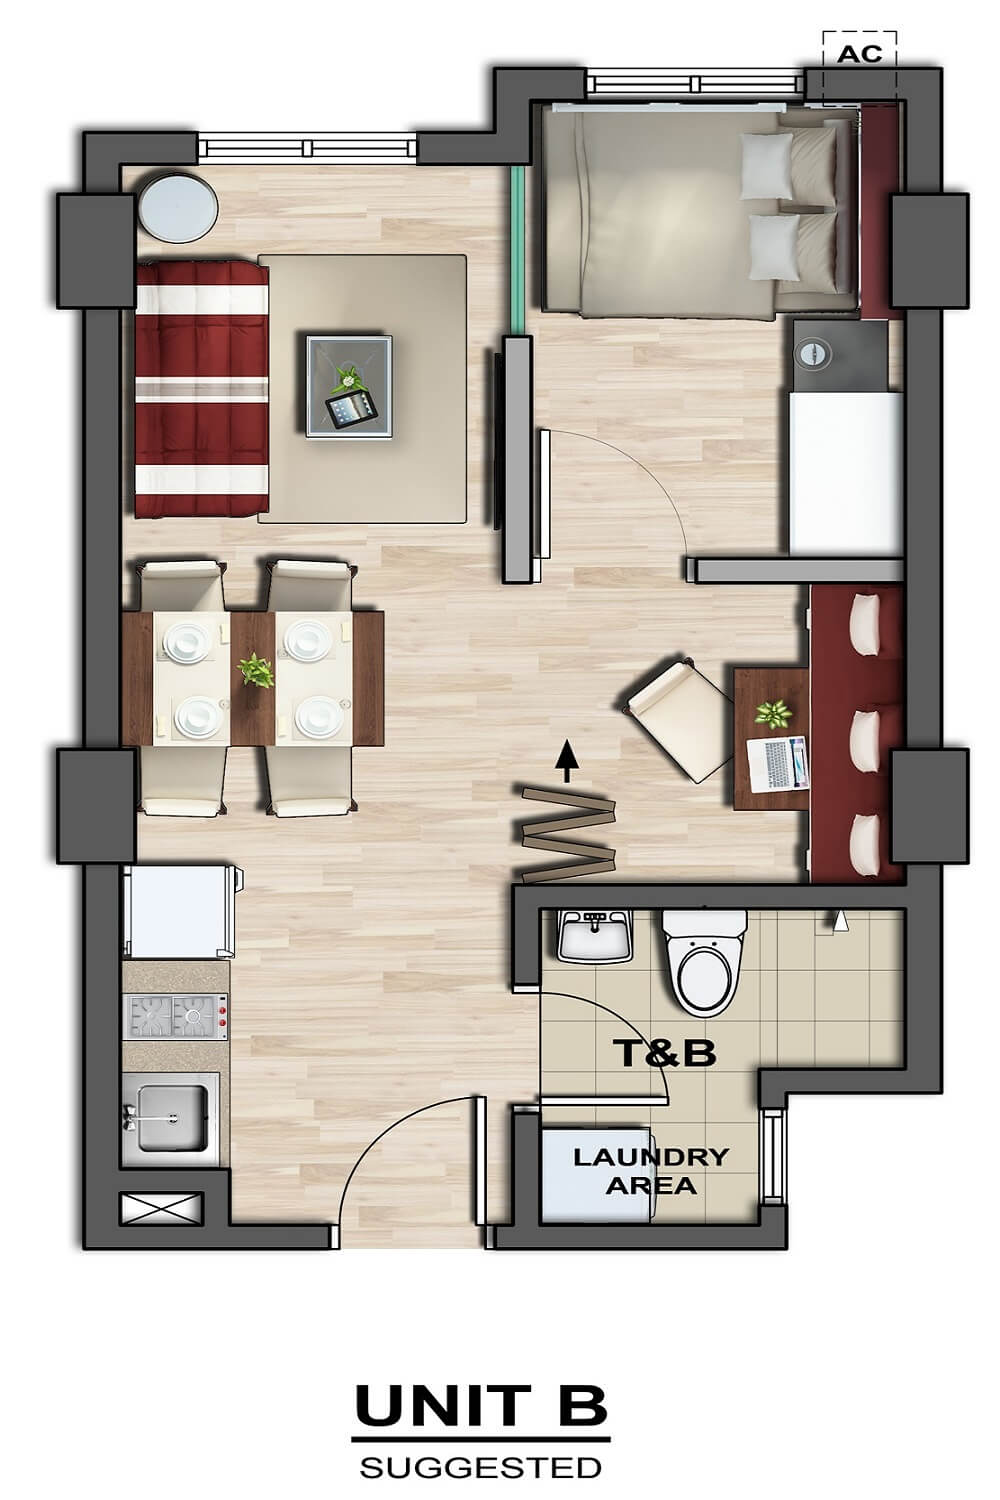 1 Bedroom without Balcony